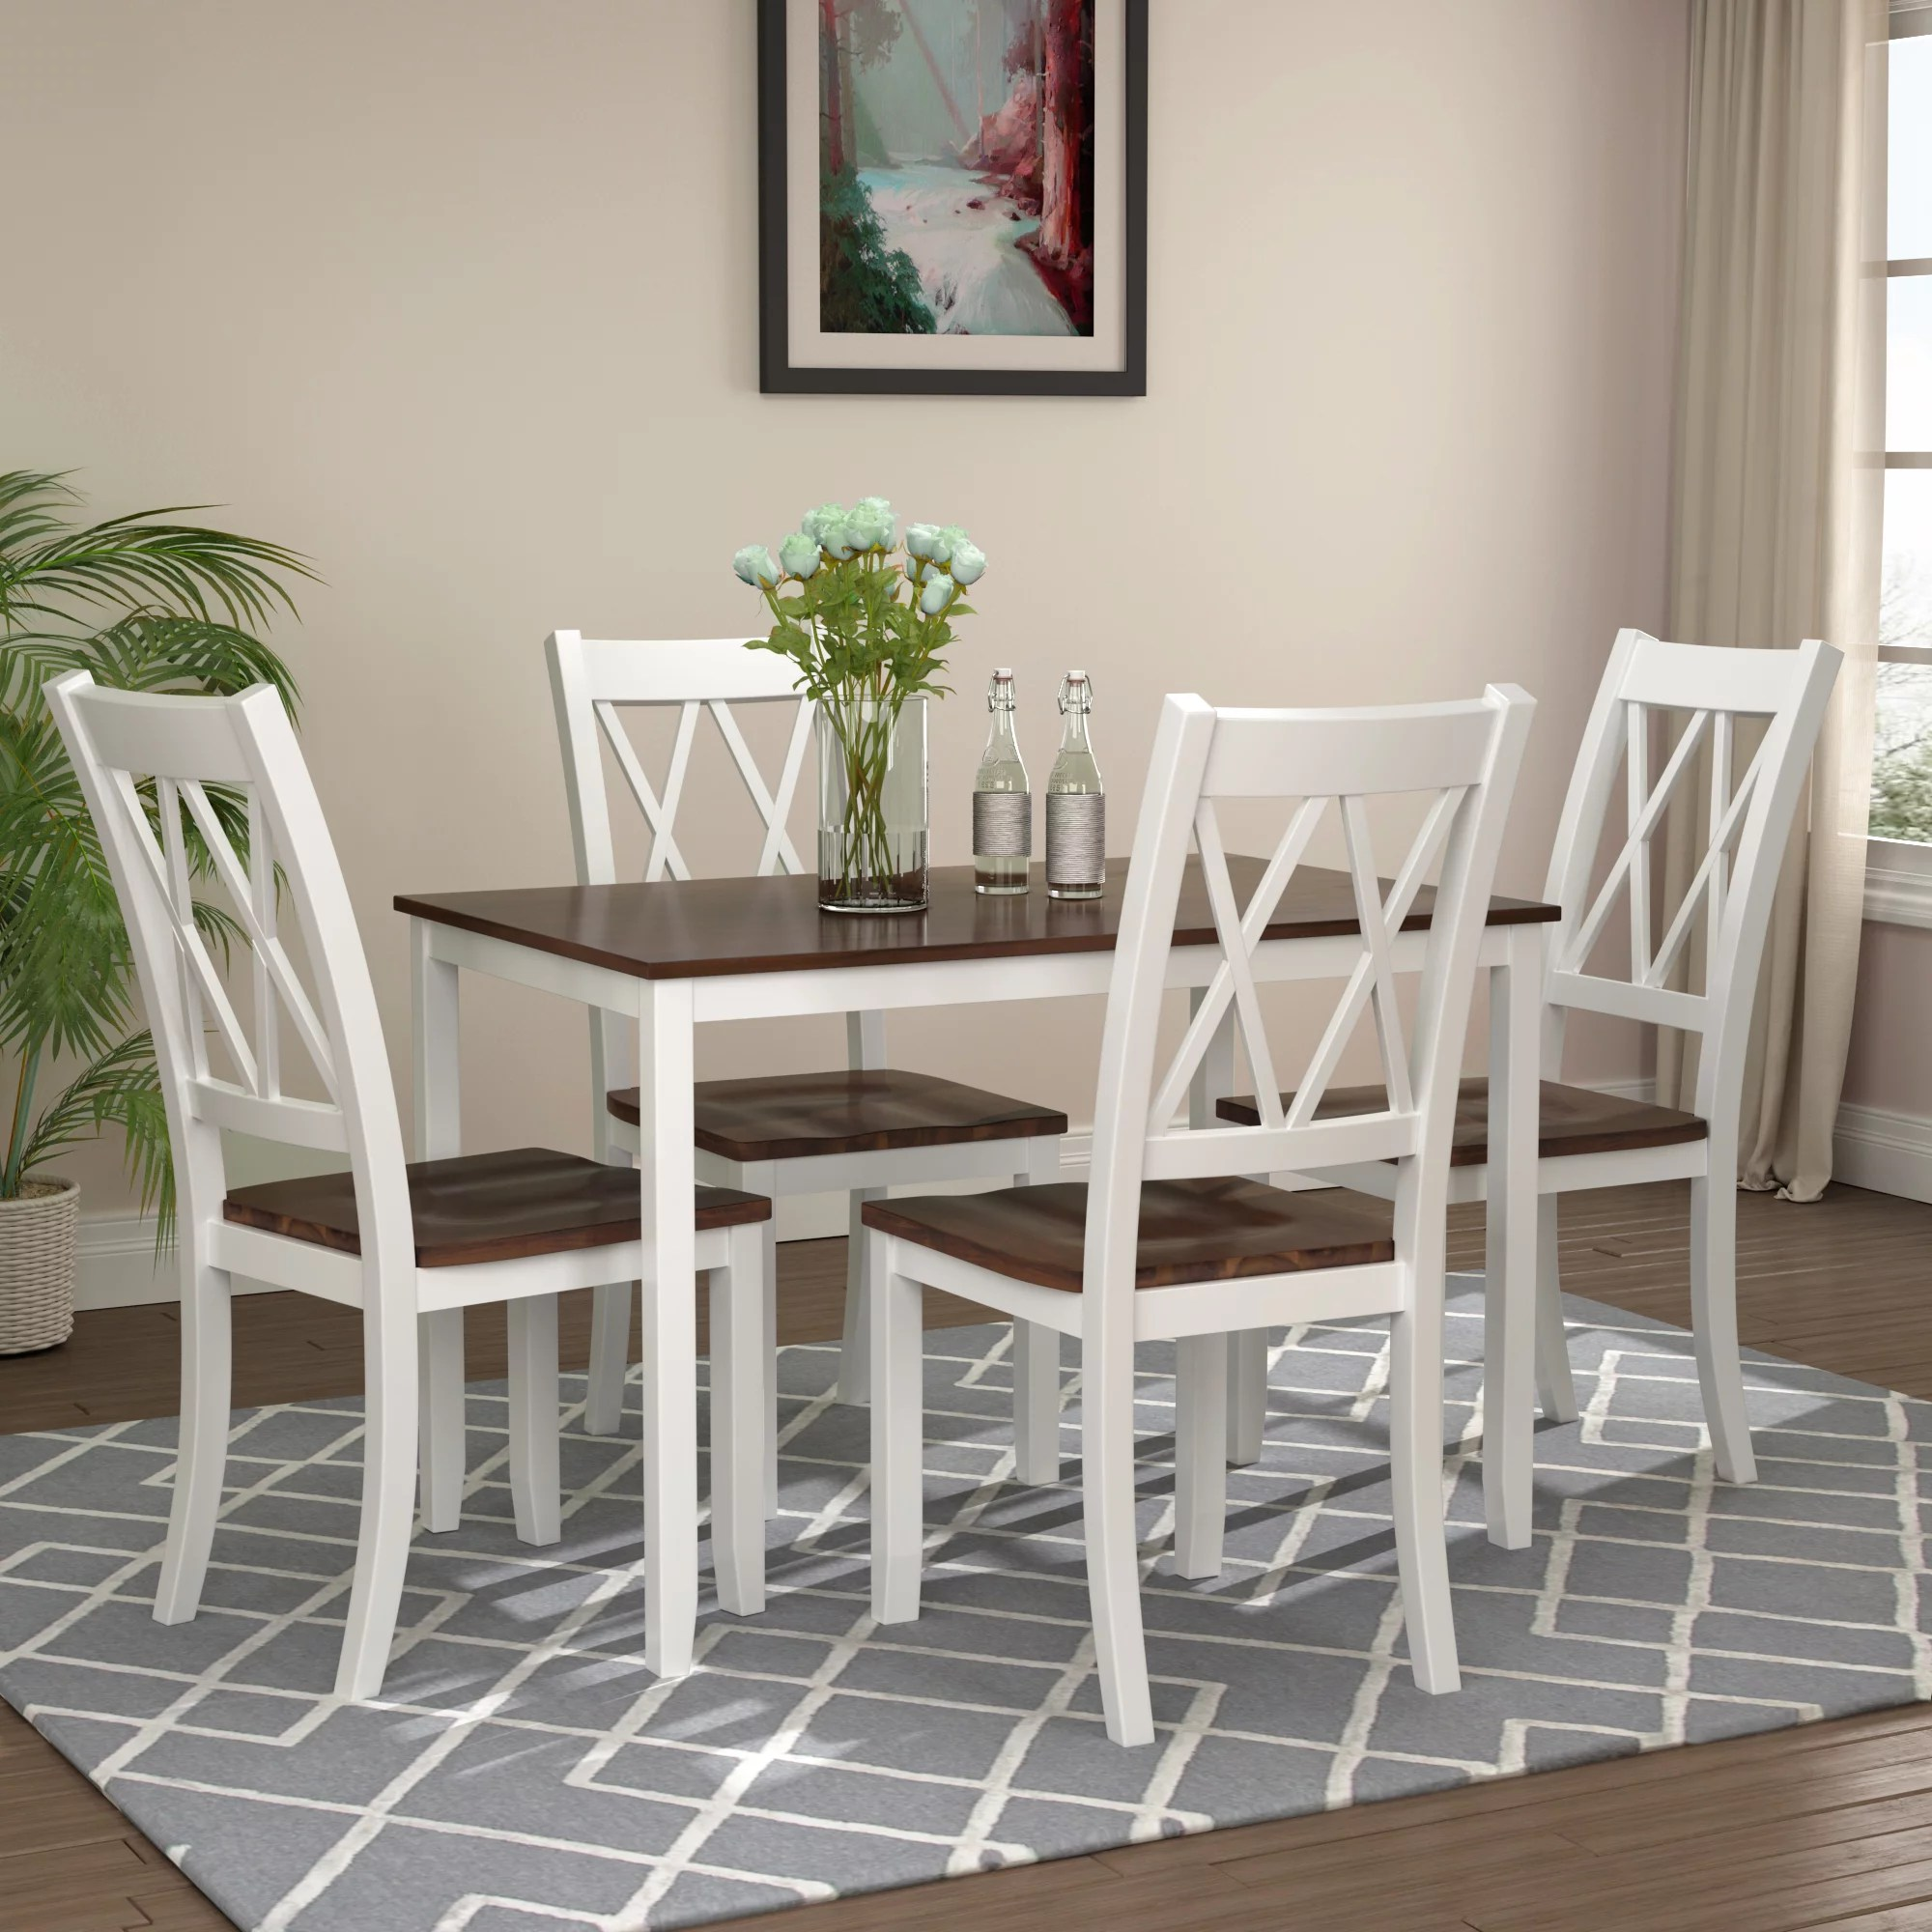 clearance dining table set with 4 chairs 5 piece wooden on dining room sets on clearance id=70109